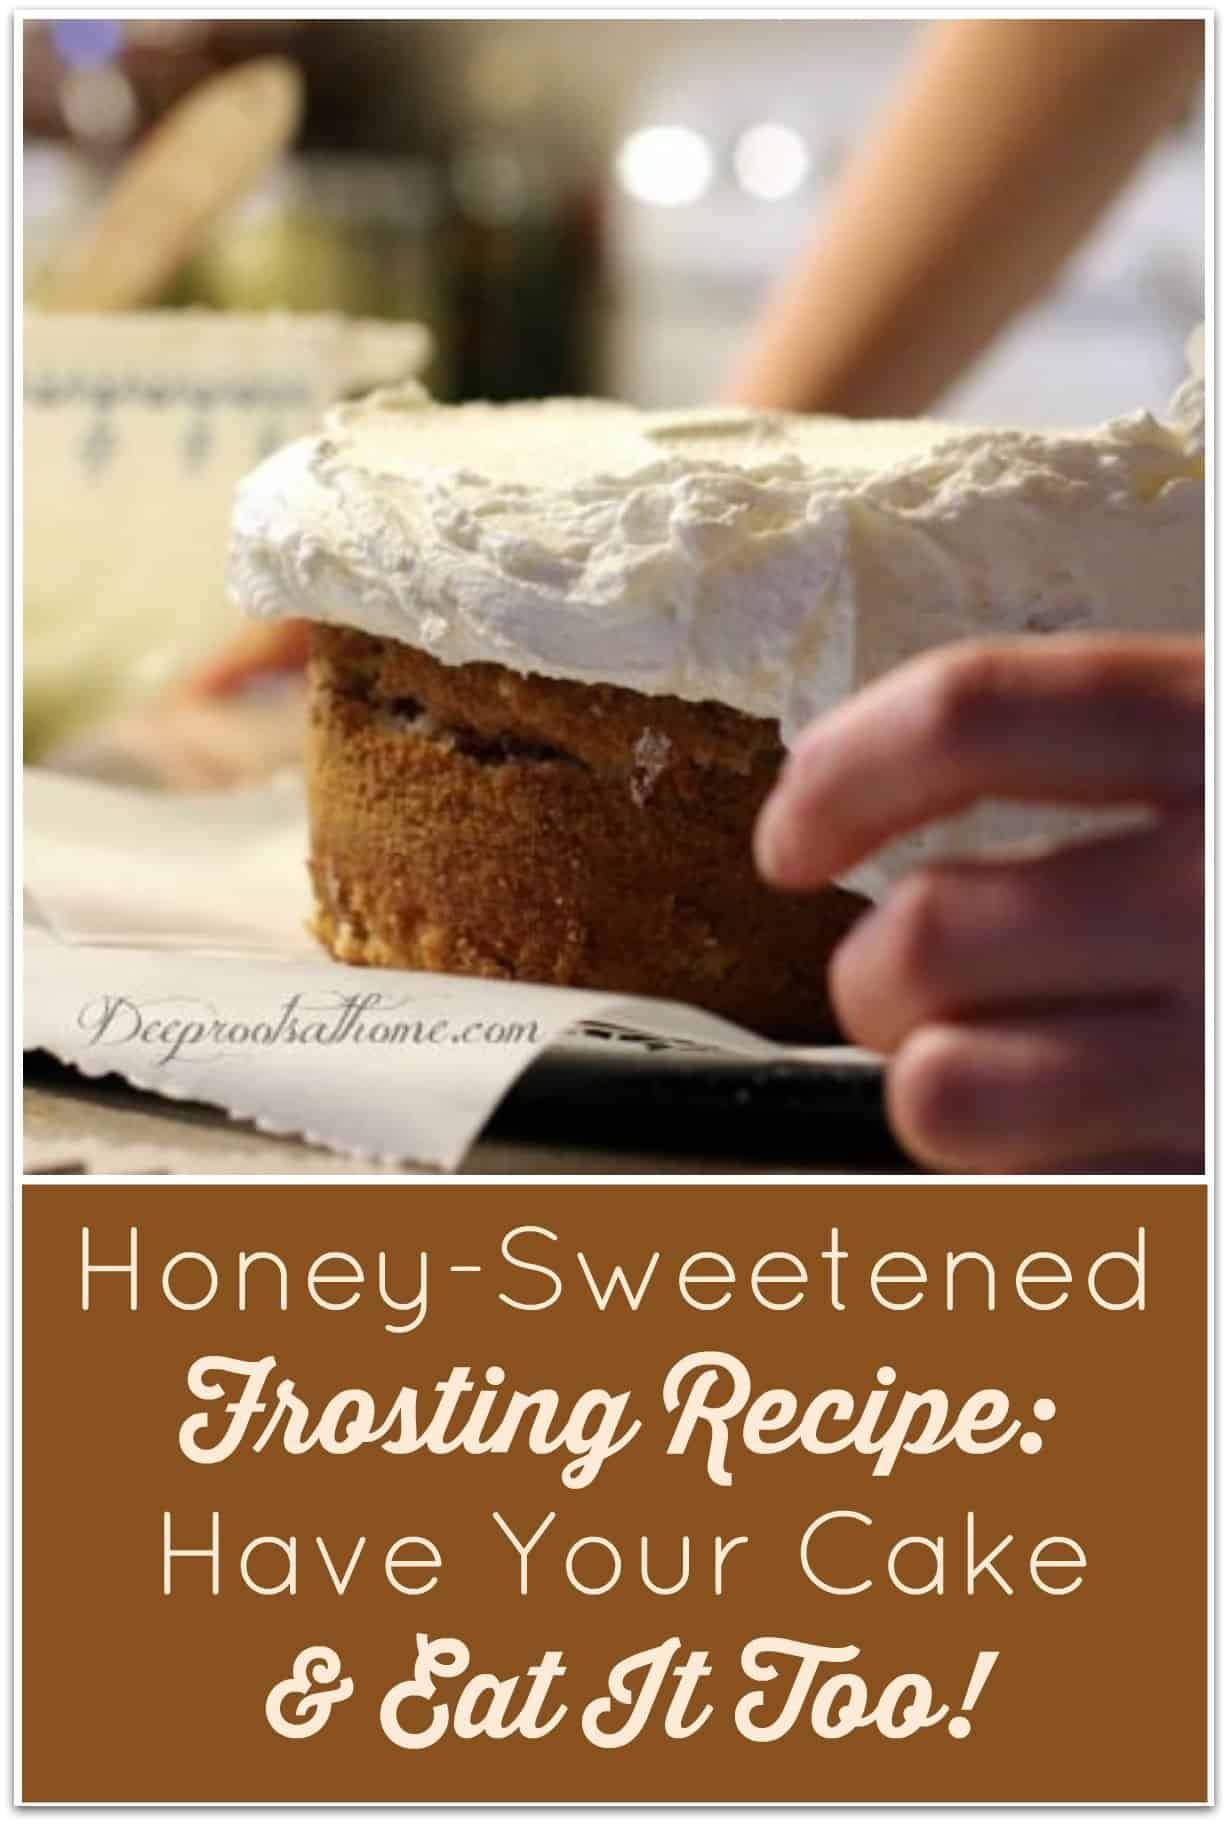 Honey-Sweetened Frosting (Have Your Cake & Eat It Too). Frosting a cake